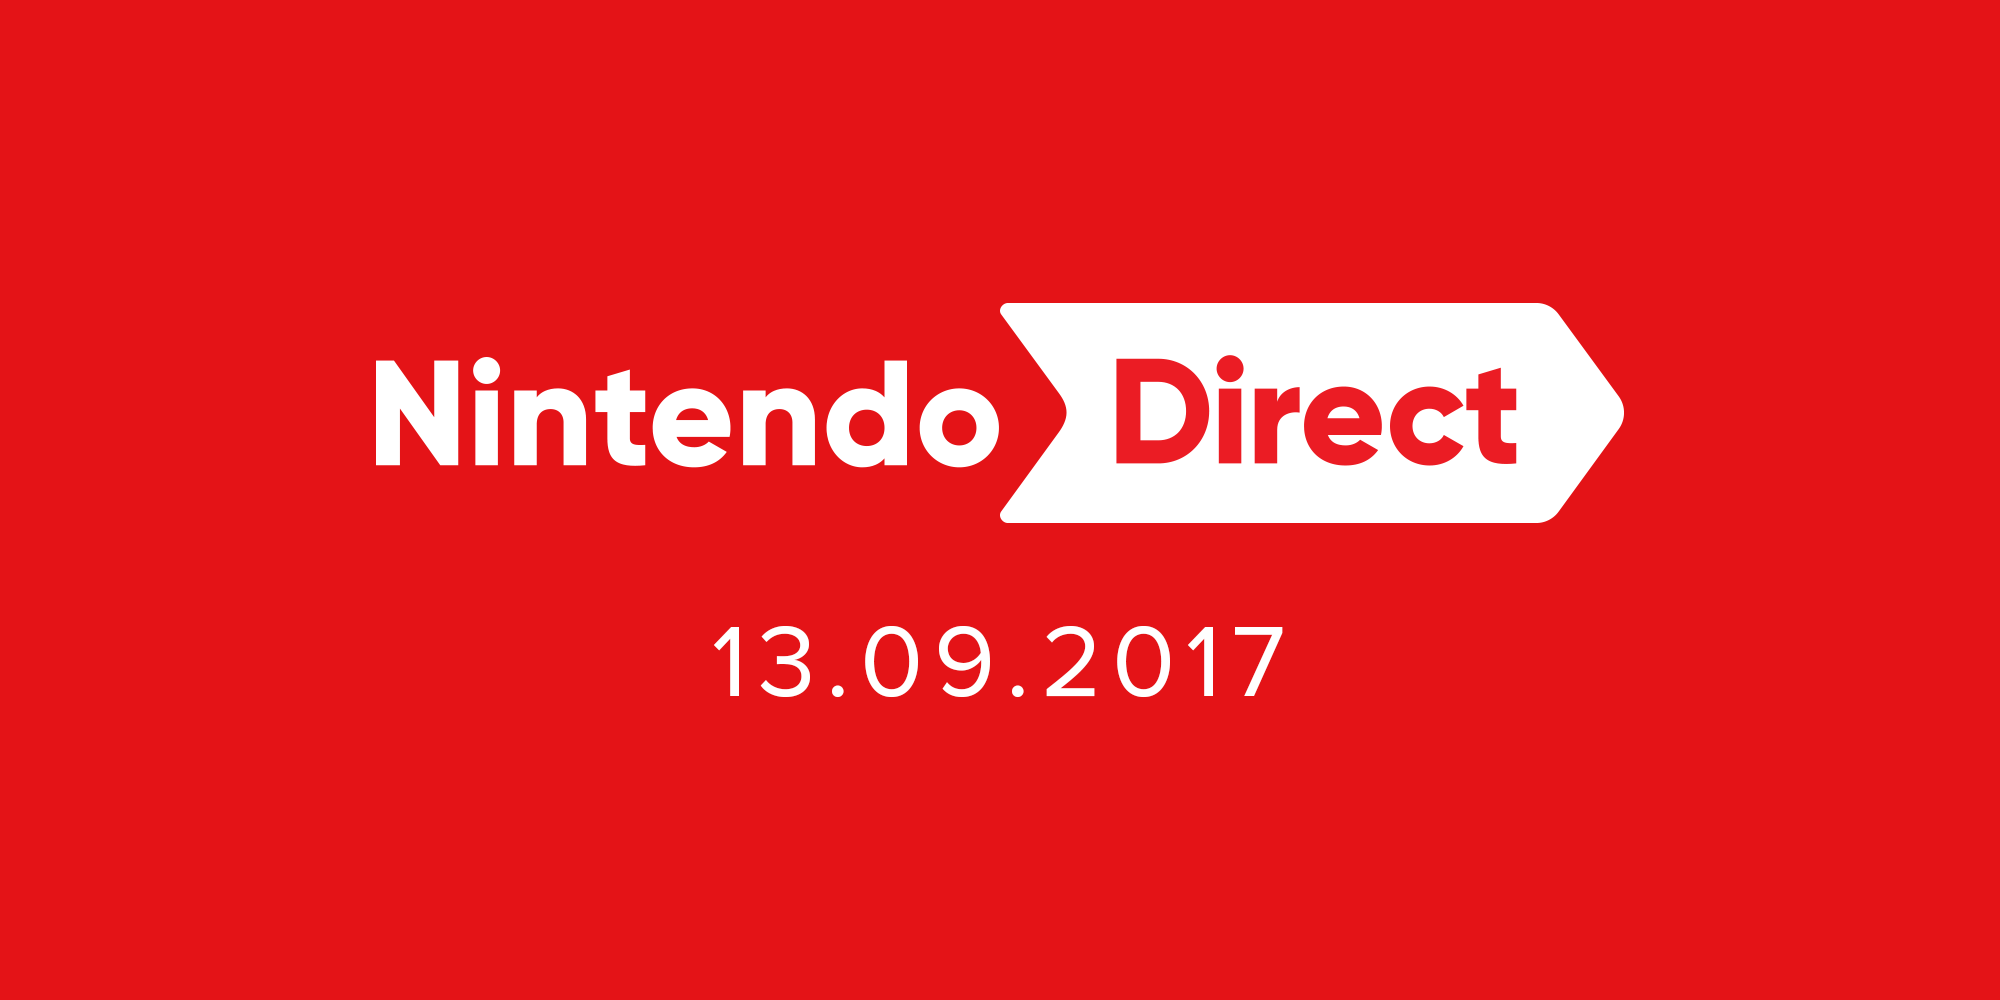 45-Minute Nintendo Direct Broadcasts This Wednesday